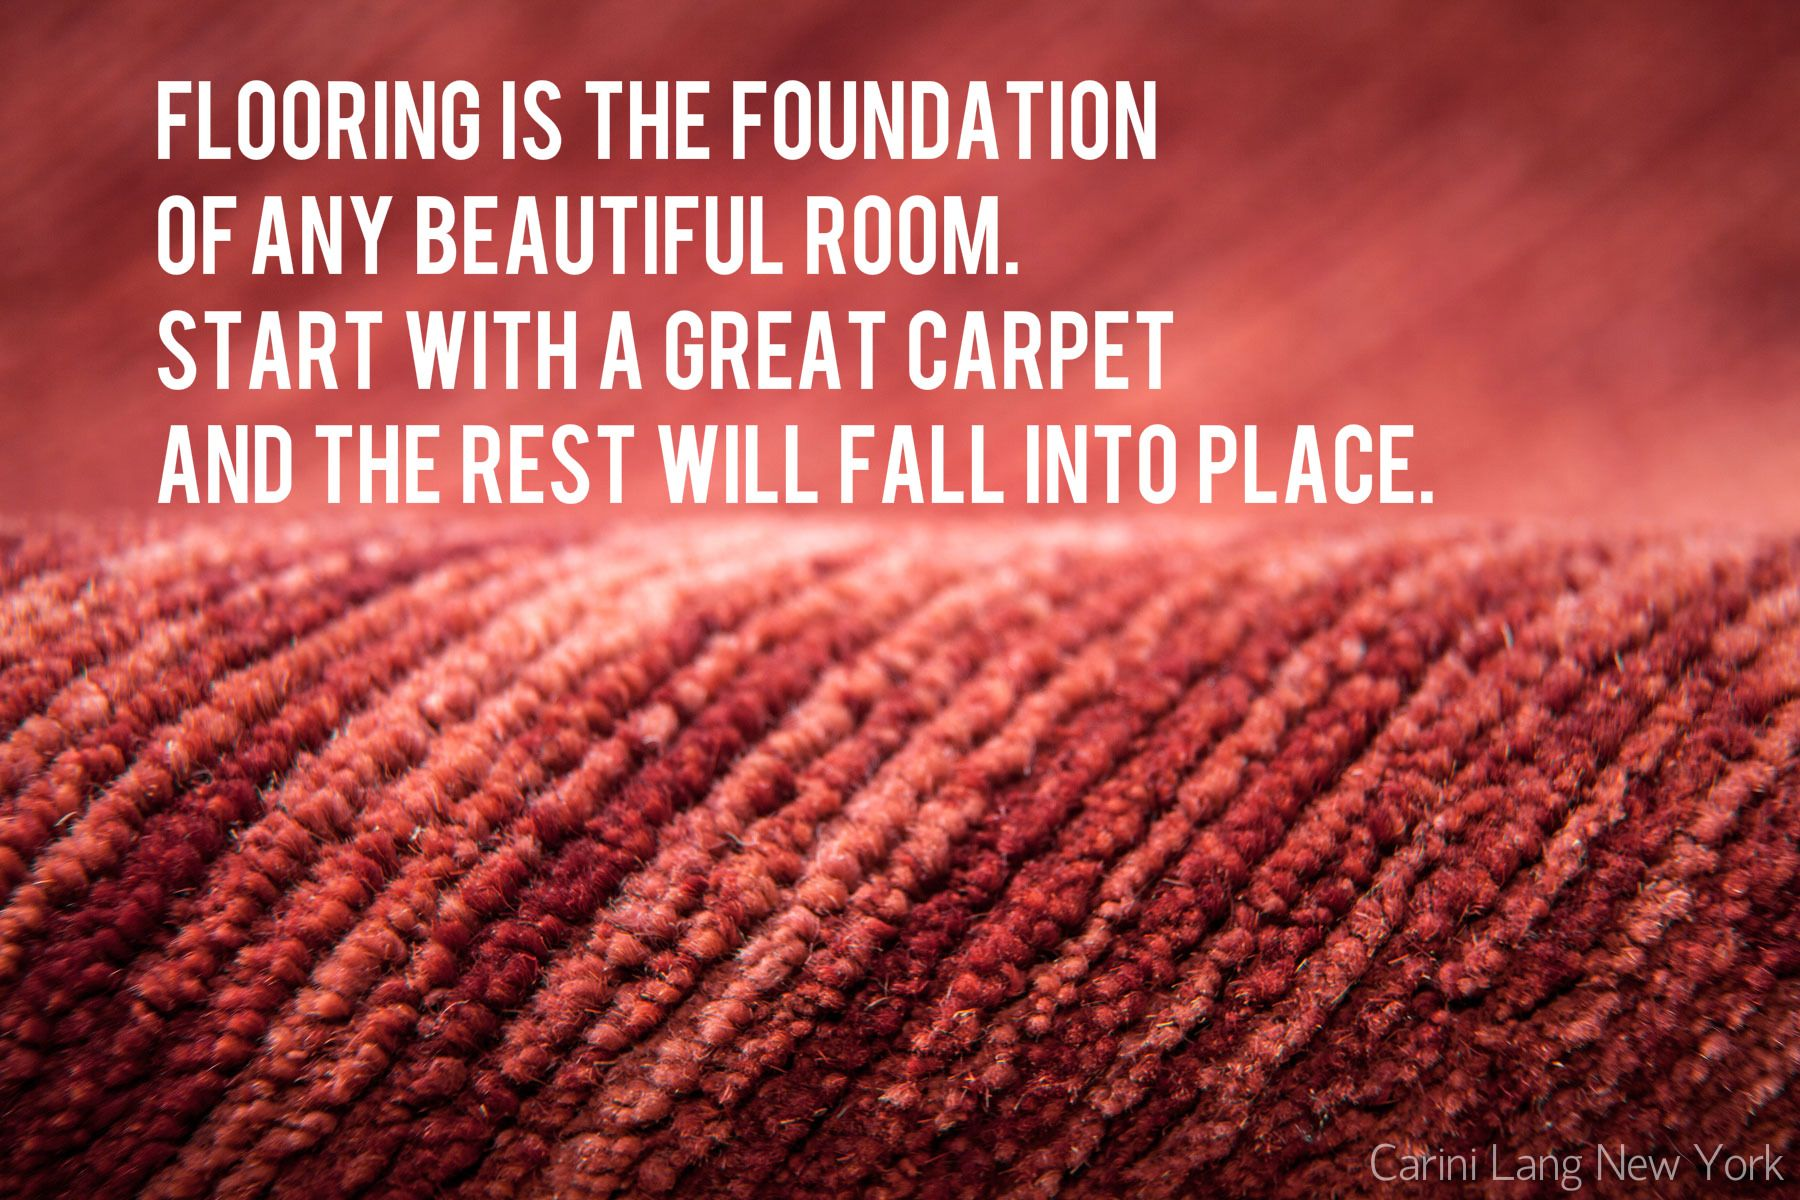 Design quote flooring rugs carpet